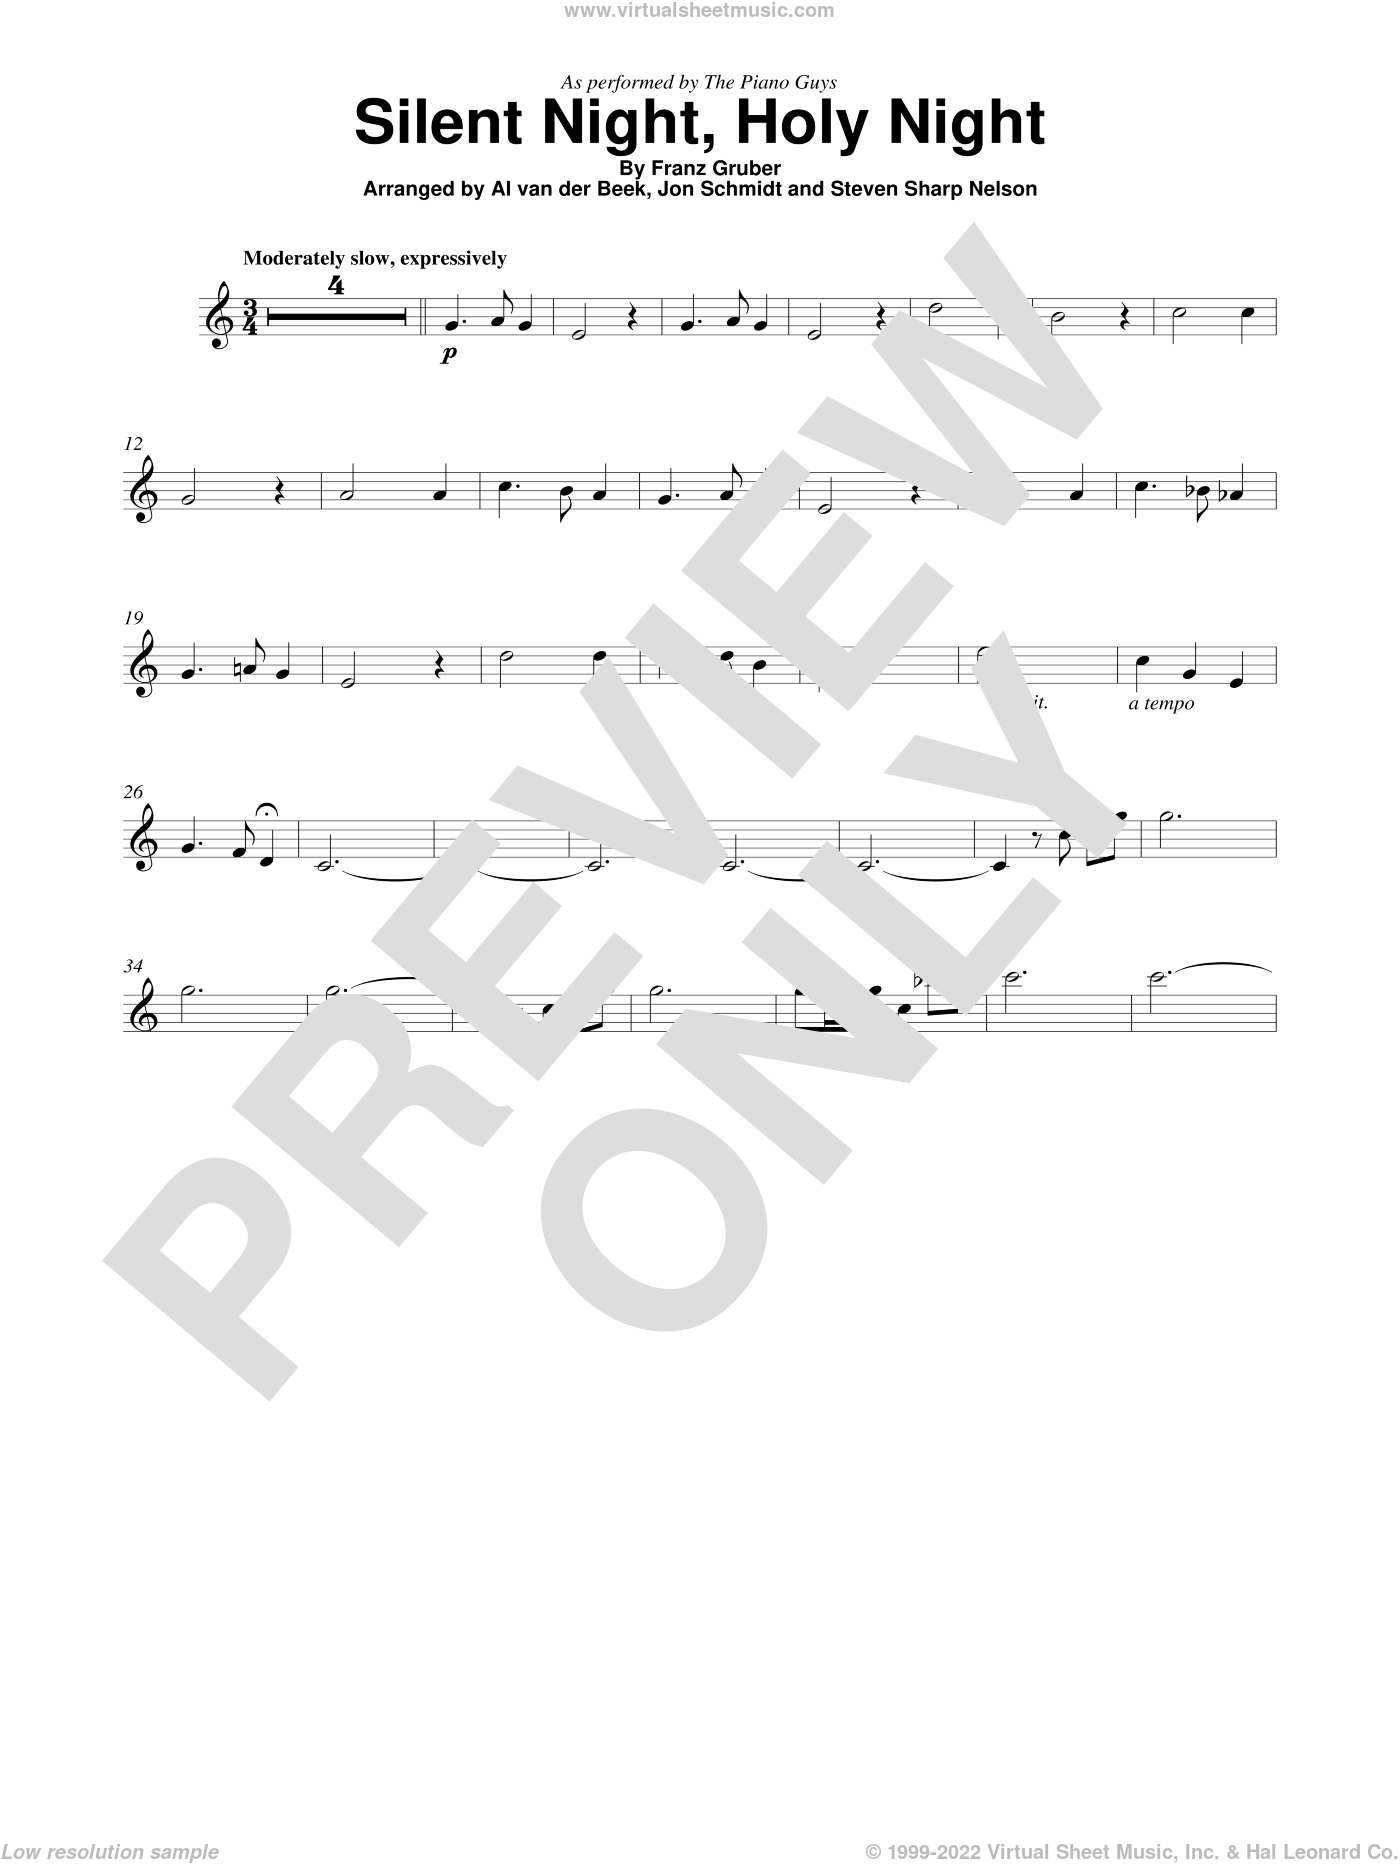 Silent Night, Holy Night sheet music for violin solo by The Piano Guys and Franz Gruber, intermediate skill level